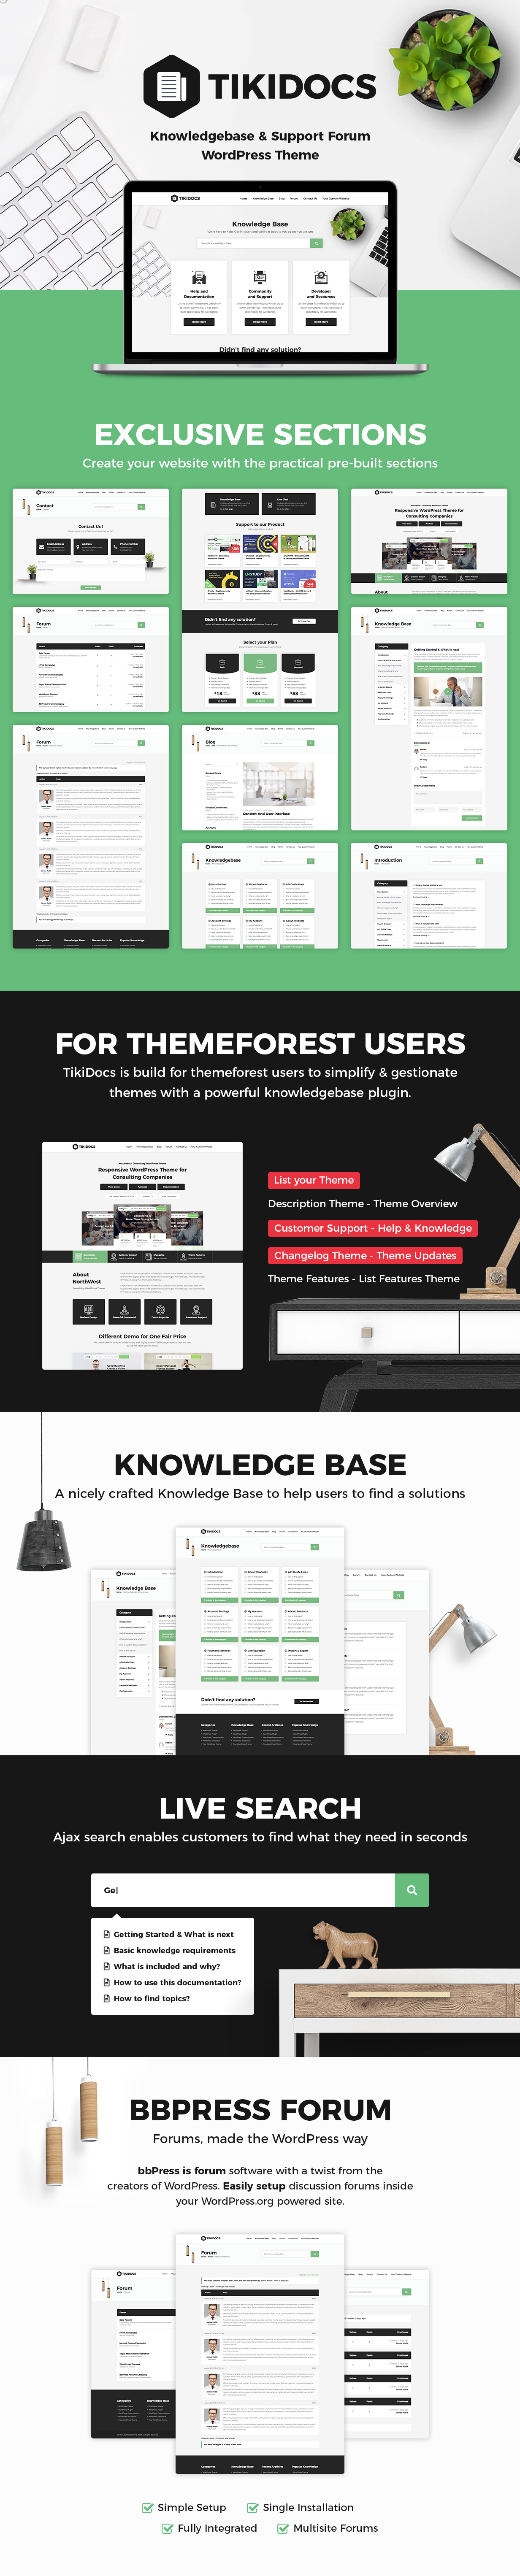 Tikidocs - Knowledgebase & Support Forum WordPress Theme - 1